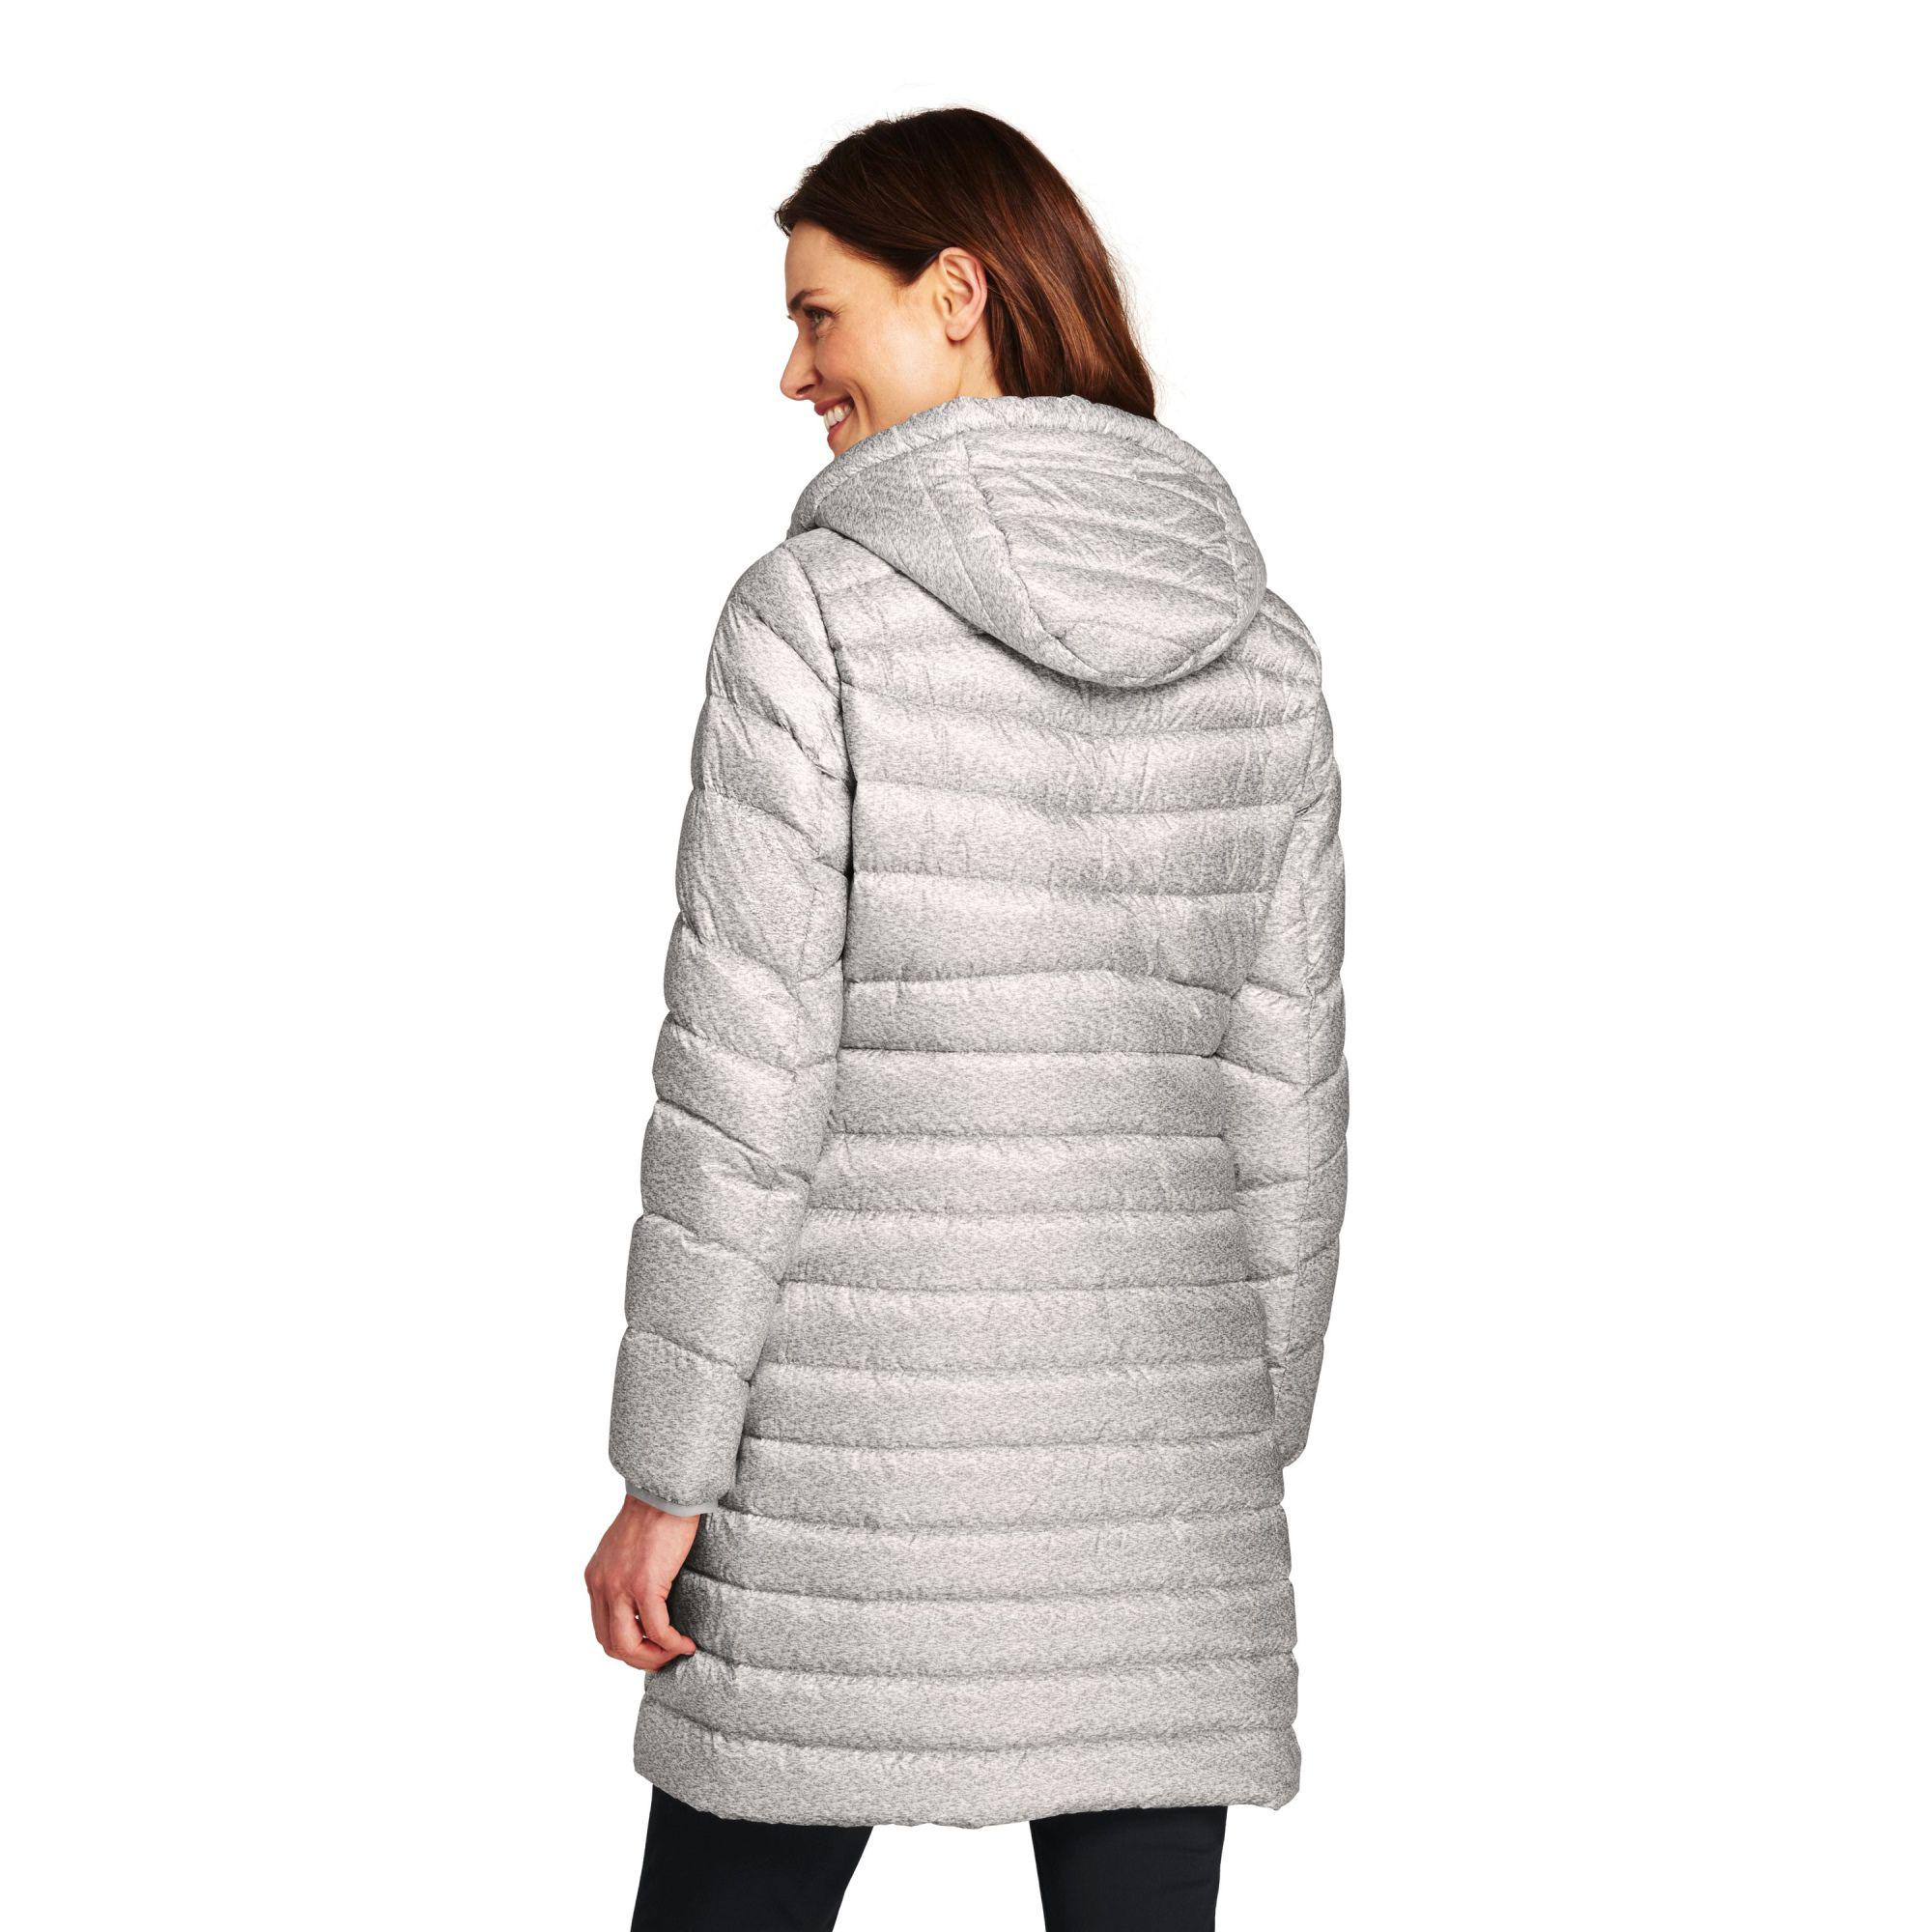 1361d6a50285 ... Petite Patterned Ultra Light Packable Down Coat - Lyst. View fullscreen